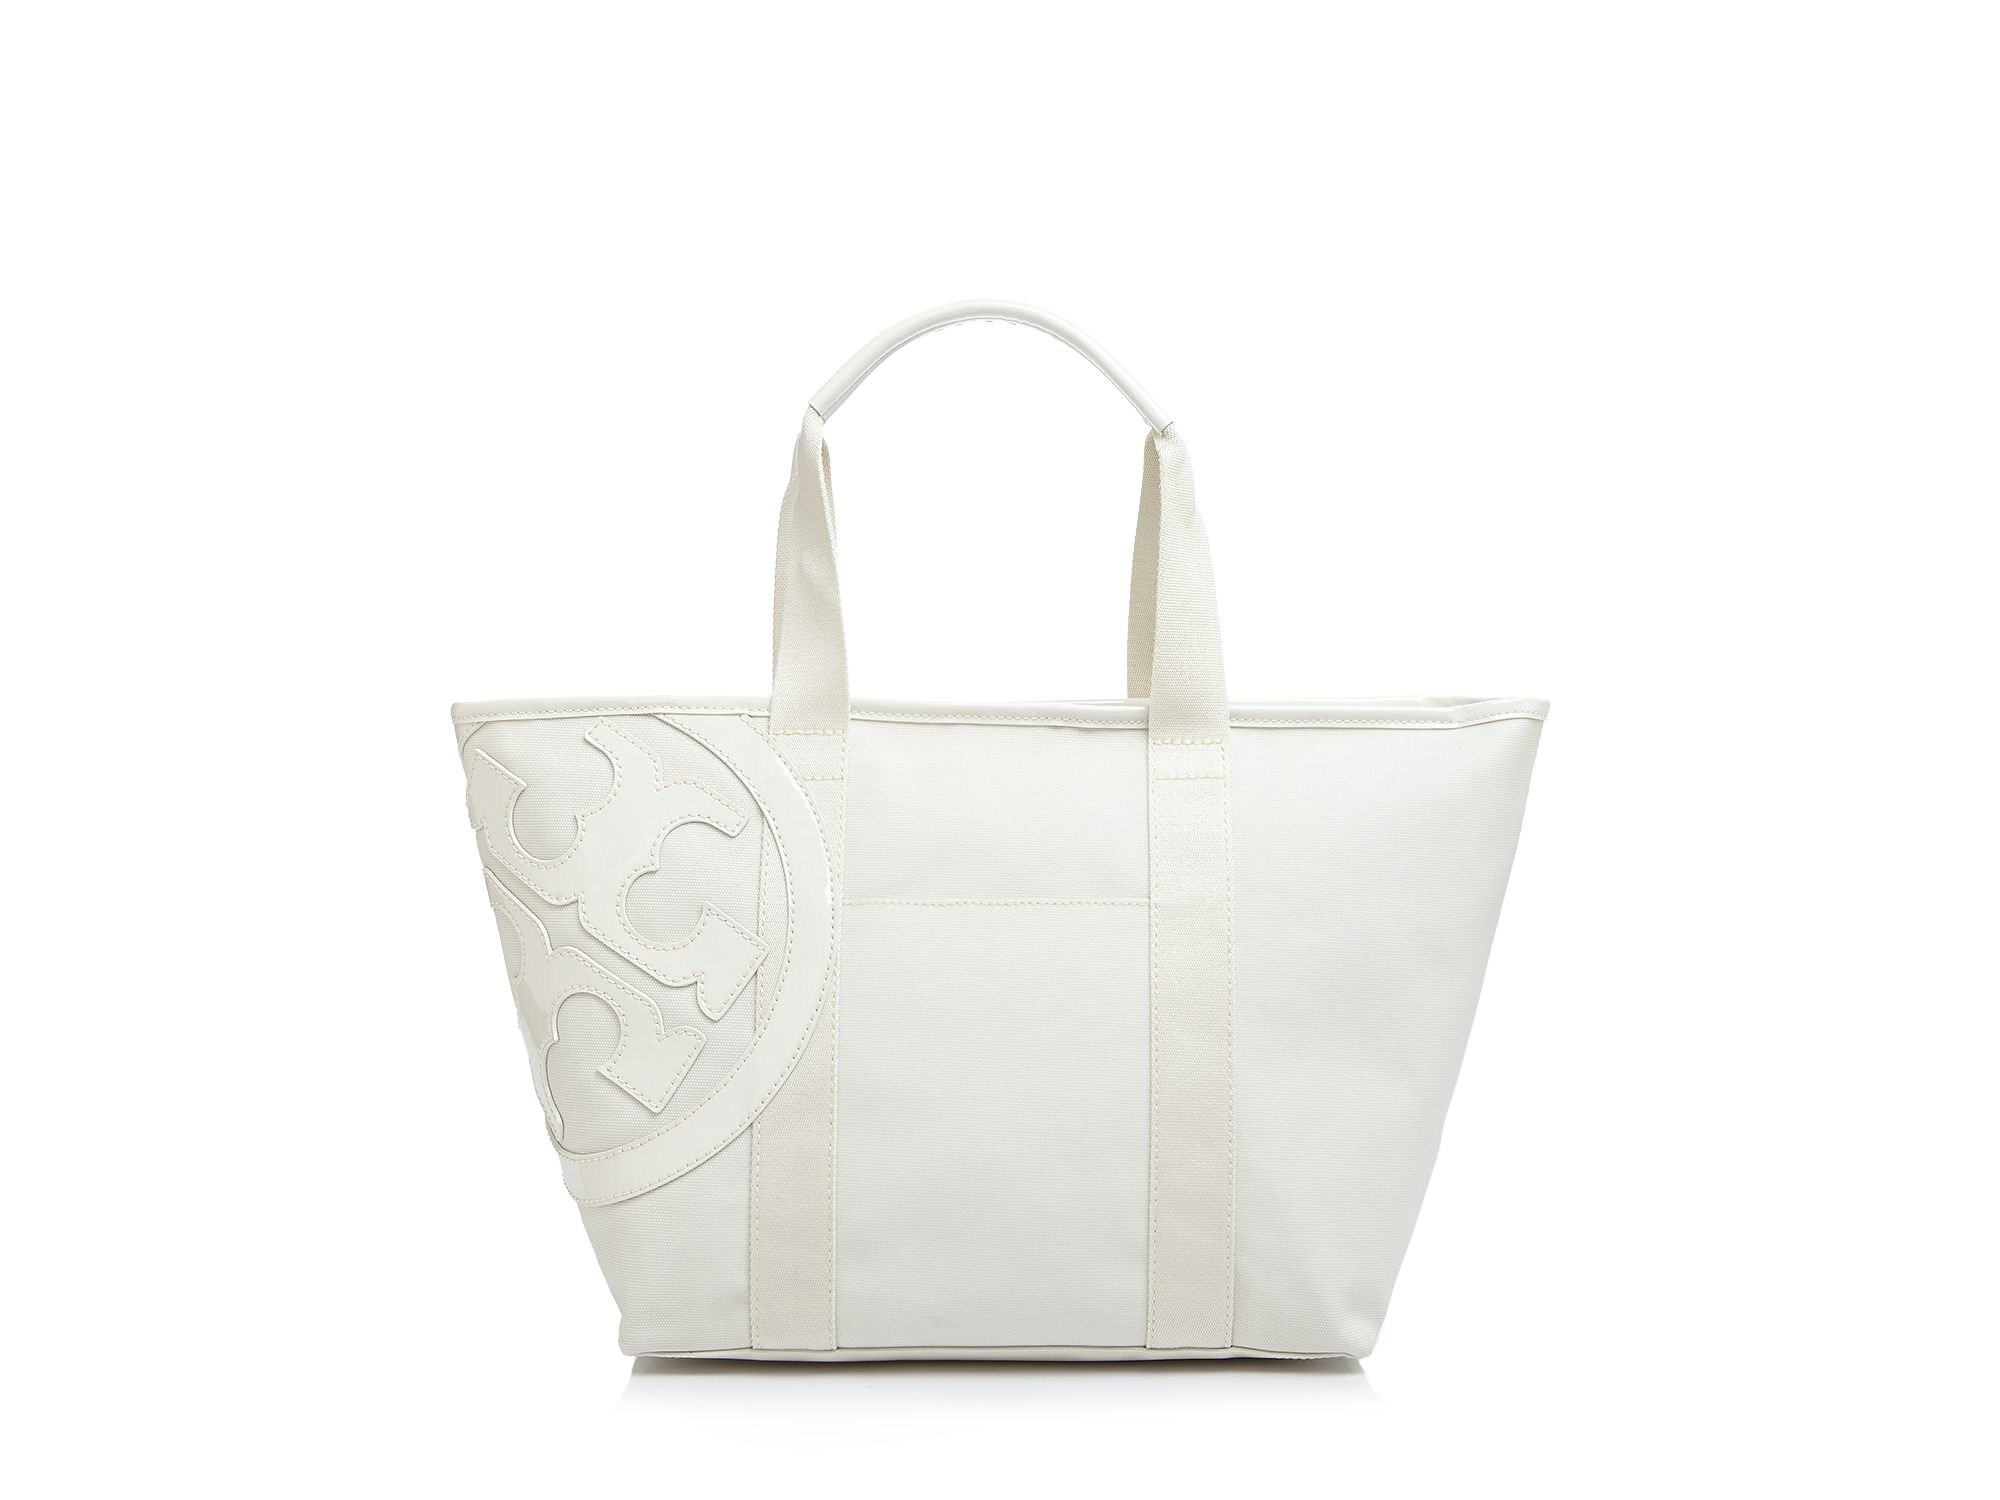 90724382eea3 Lyst - Tory Burch Small Beach Canvas Tote in White